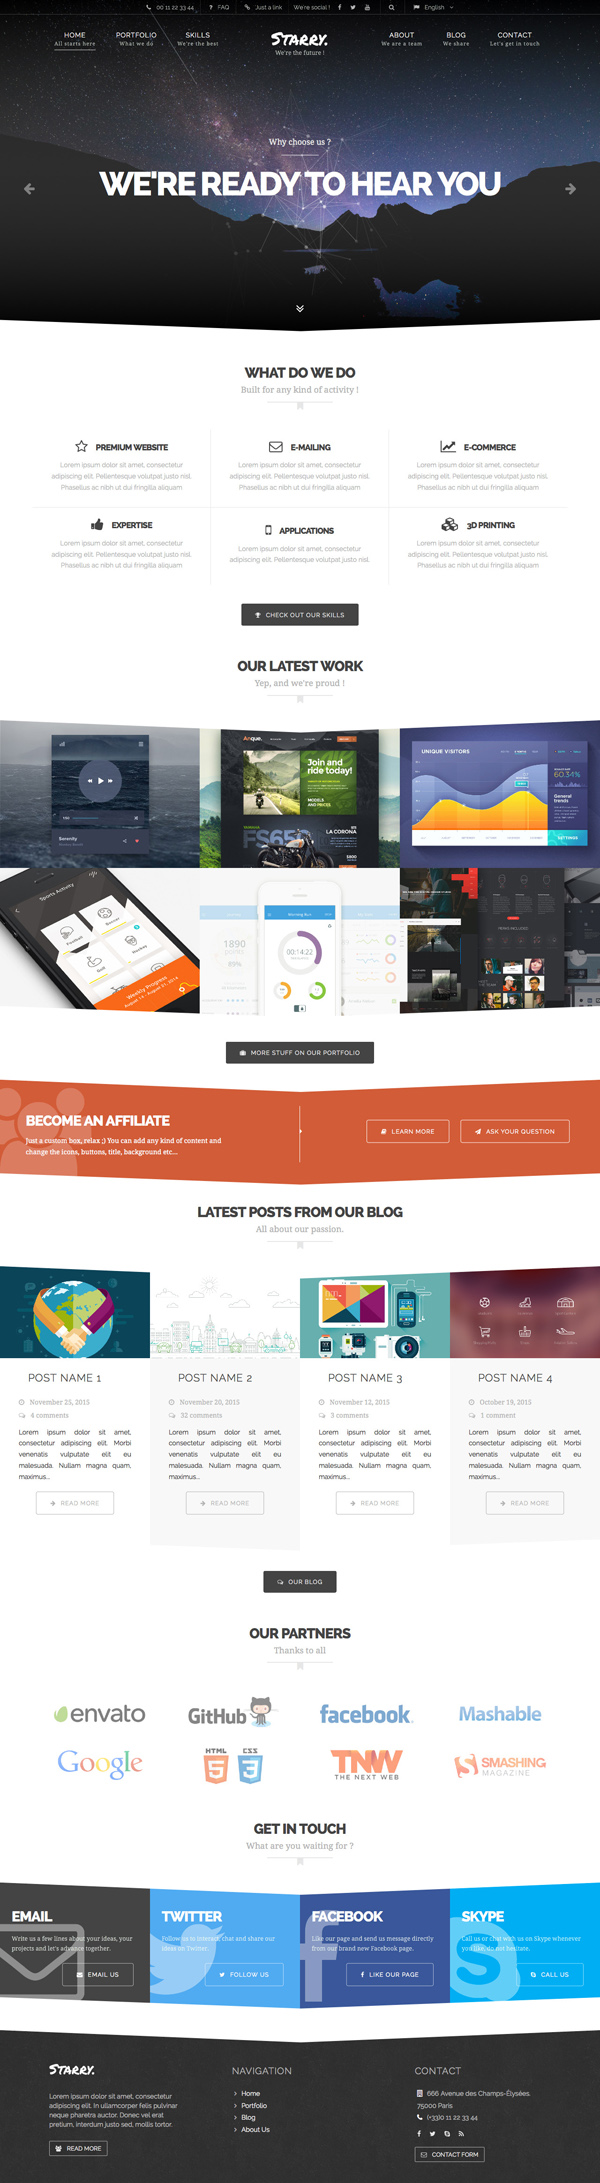 Starry - Creative & Easy WordPress theme